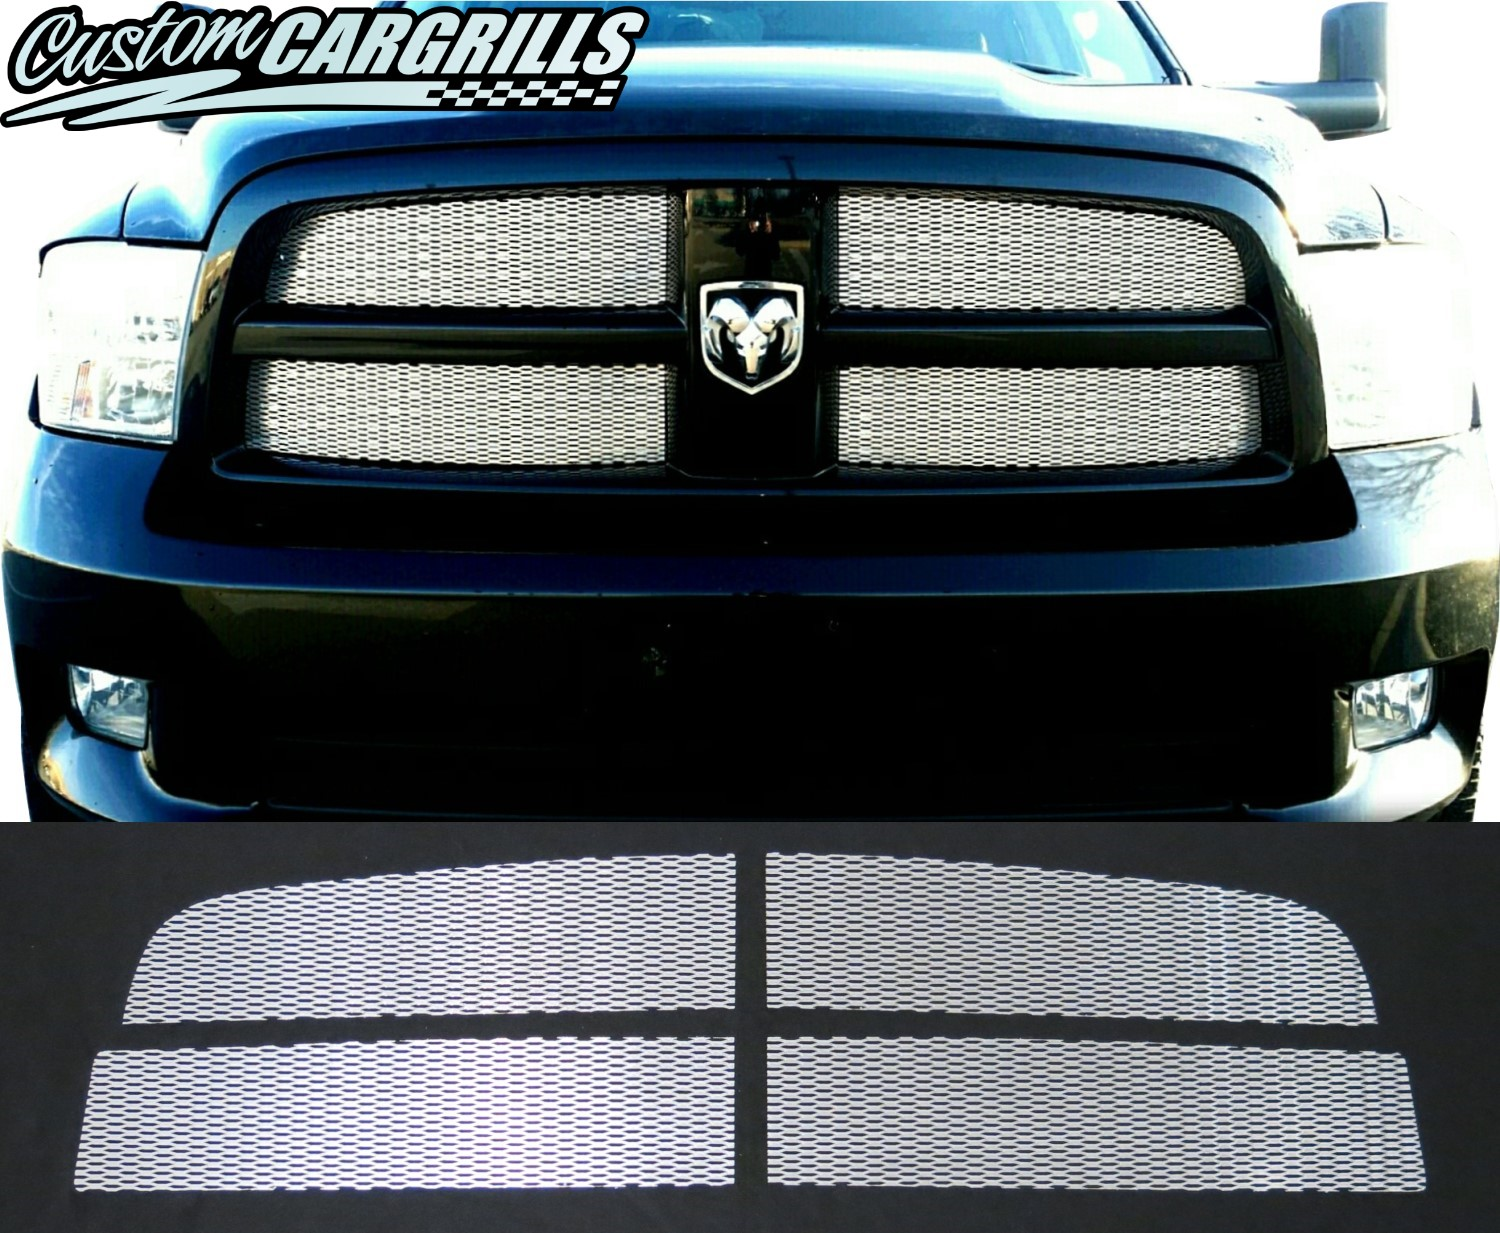 2009 - 2012 Dodge Ram Mesh Grill Kit